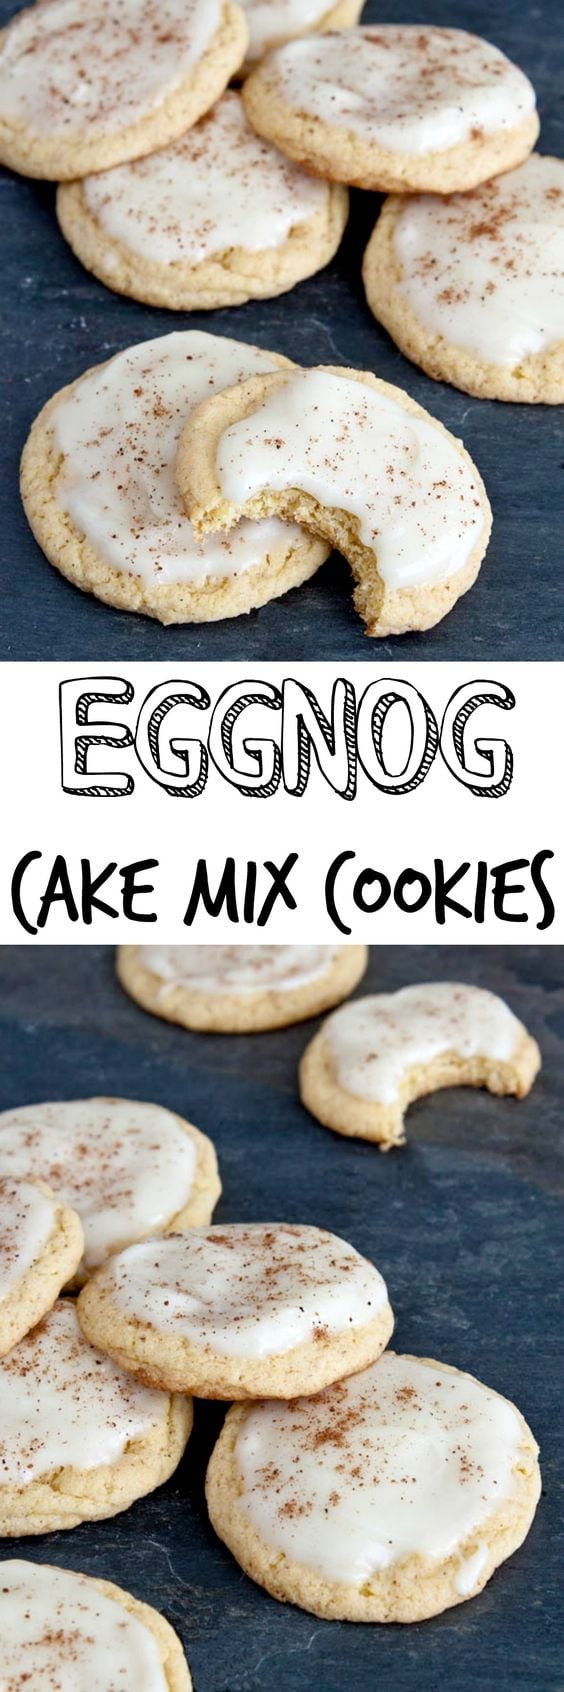 Eggnog cookies made with a cake mix! Use eggnog with the cake mi and in the delicious frosting! Don't forget the nutmeg! #eggnogcookies #eggnog #cakemix #cakemixcookies #christmas #christmasdessert #christmascookie